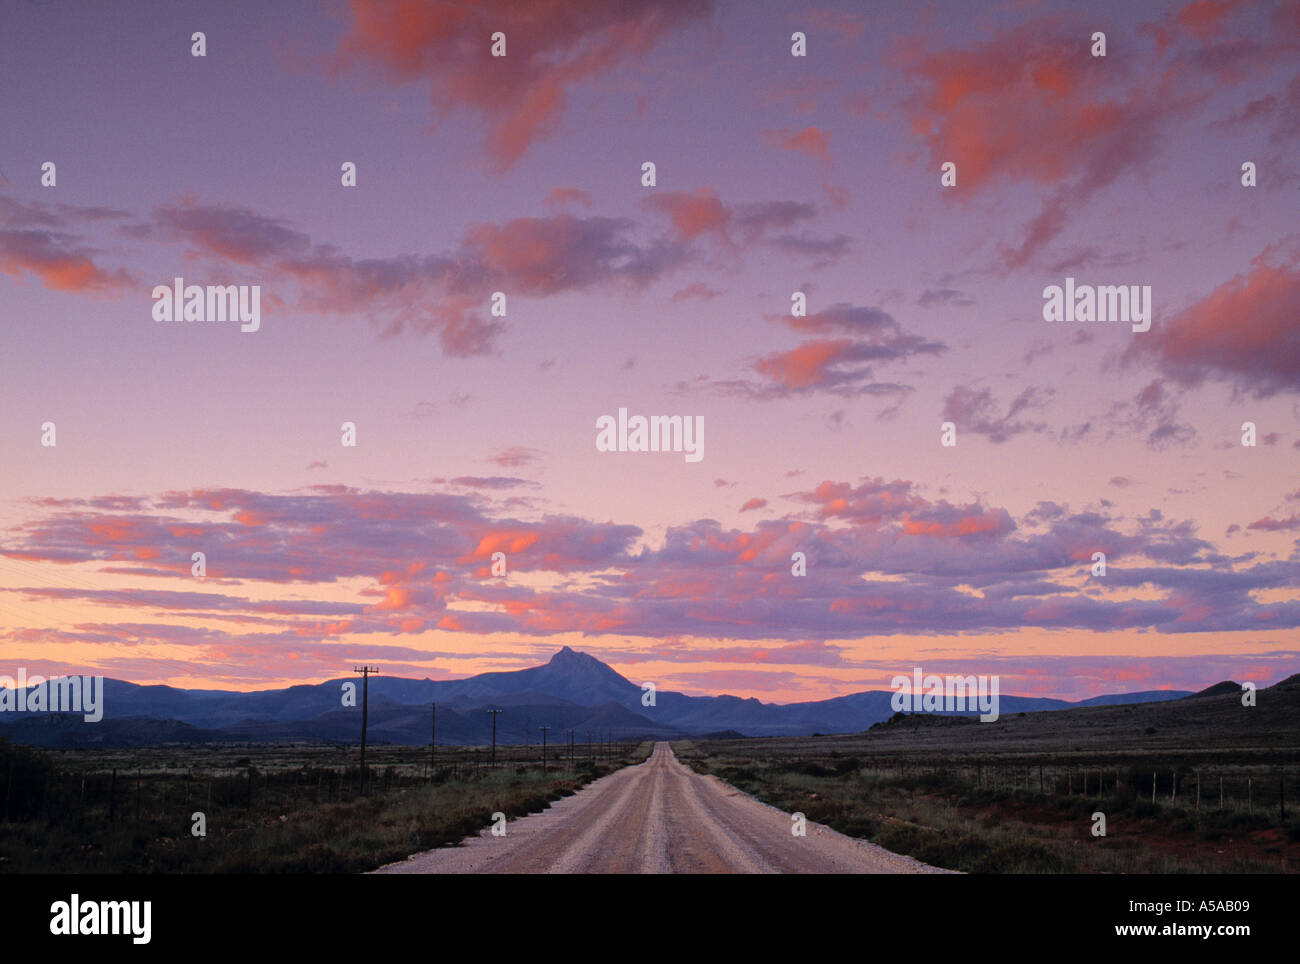 Road, The Karoo, Eastern Cape, South Africa - Stock Image